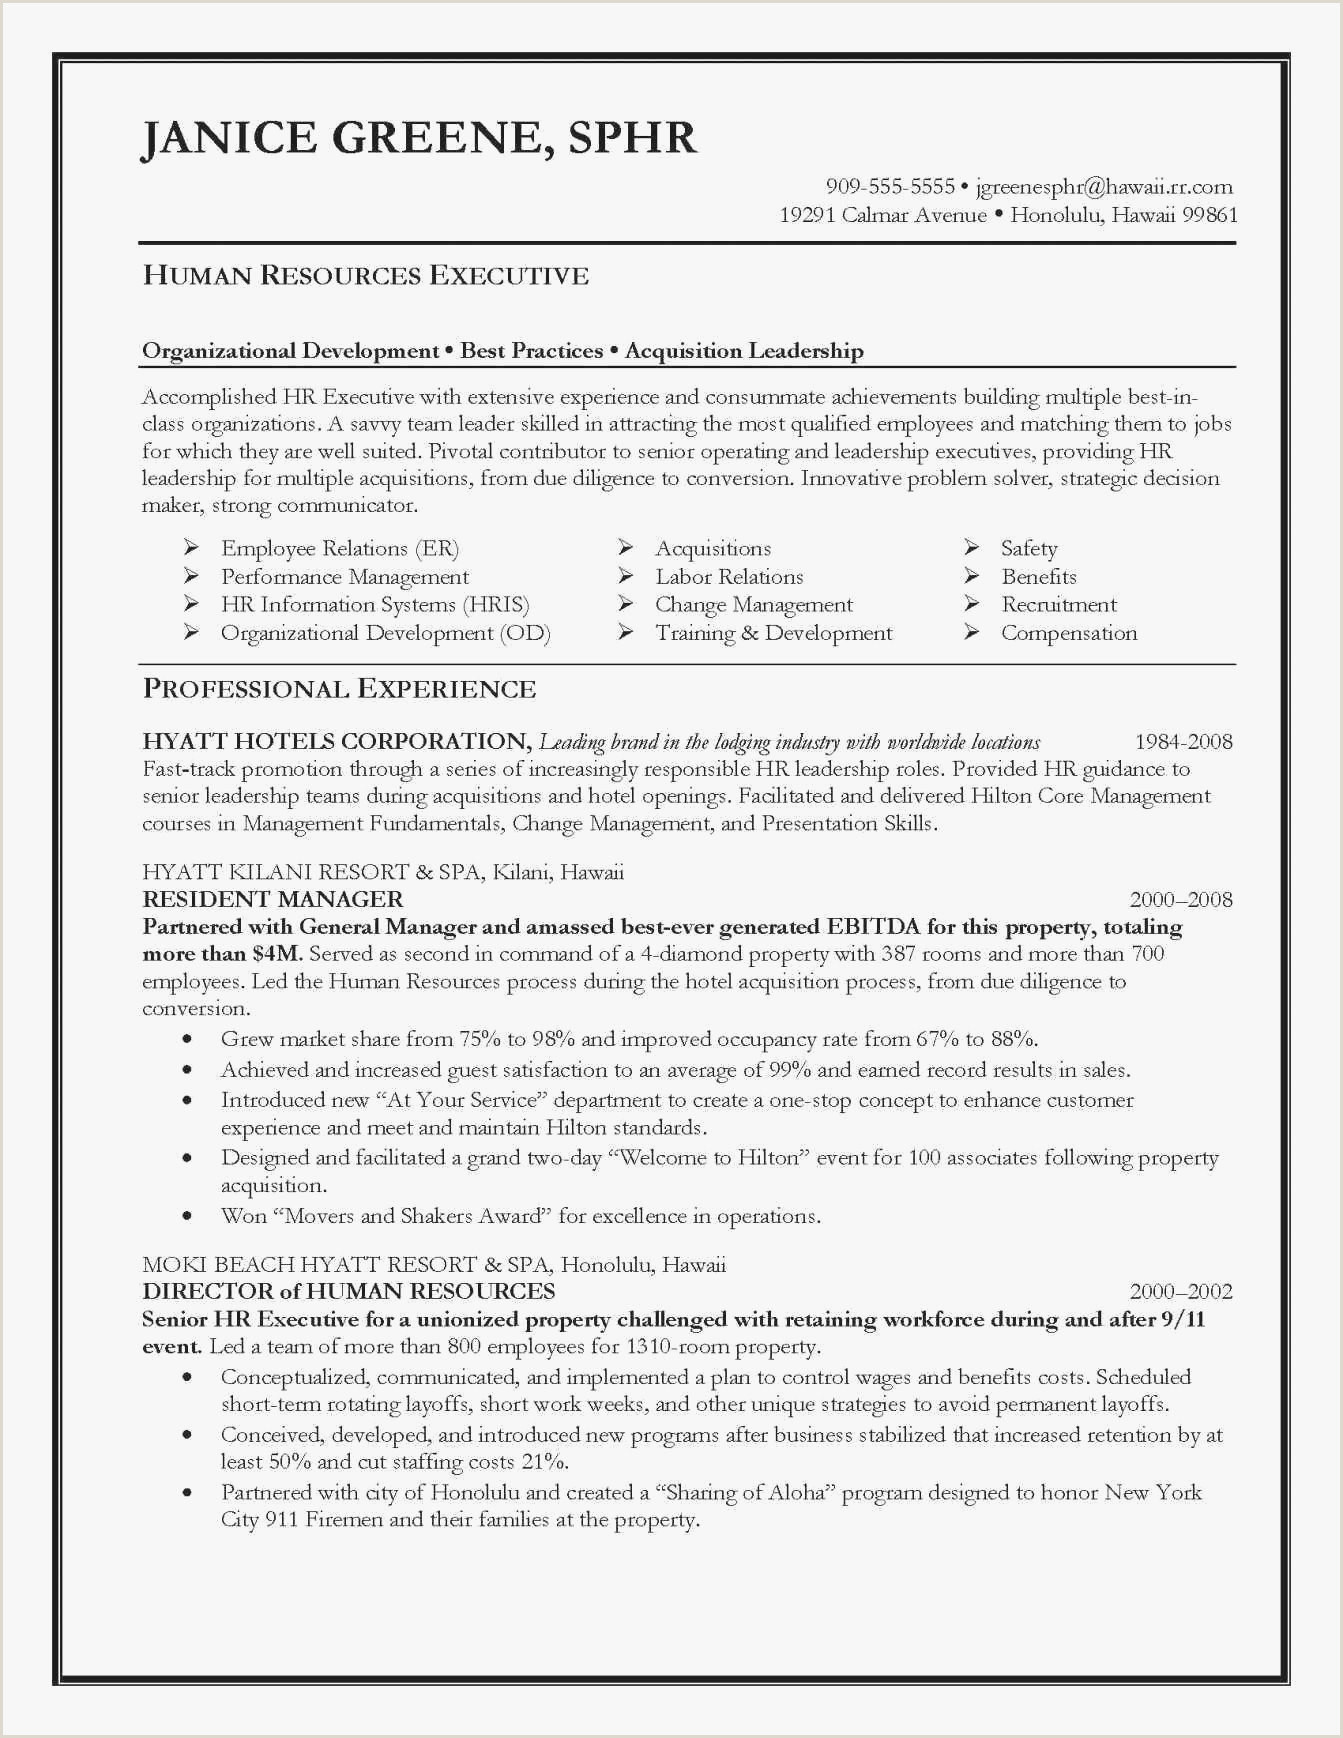 Hotel Management Student Resume Student Resume Samples Professional Required Classes to